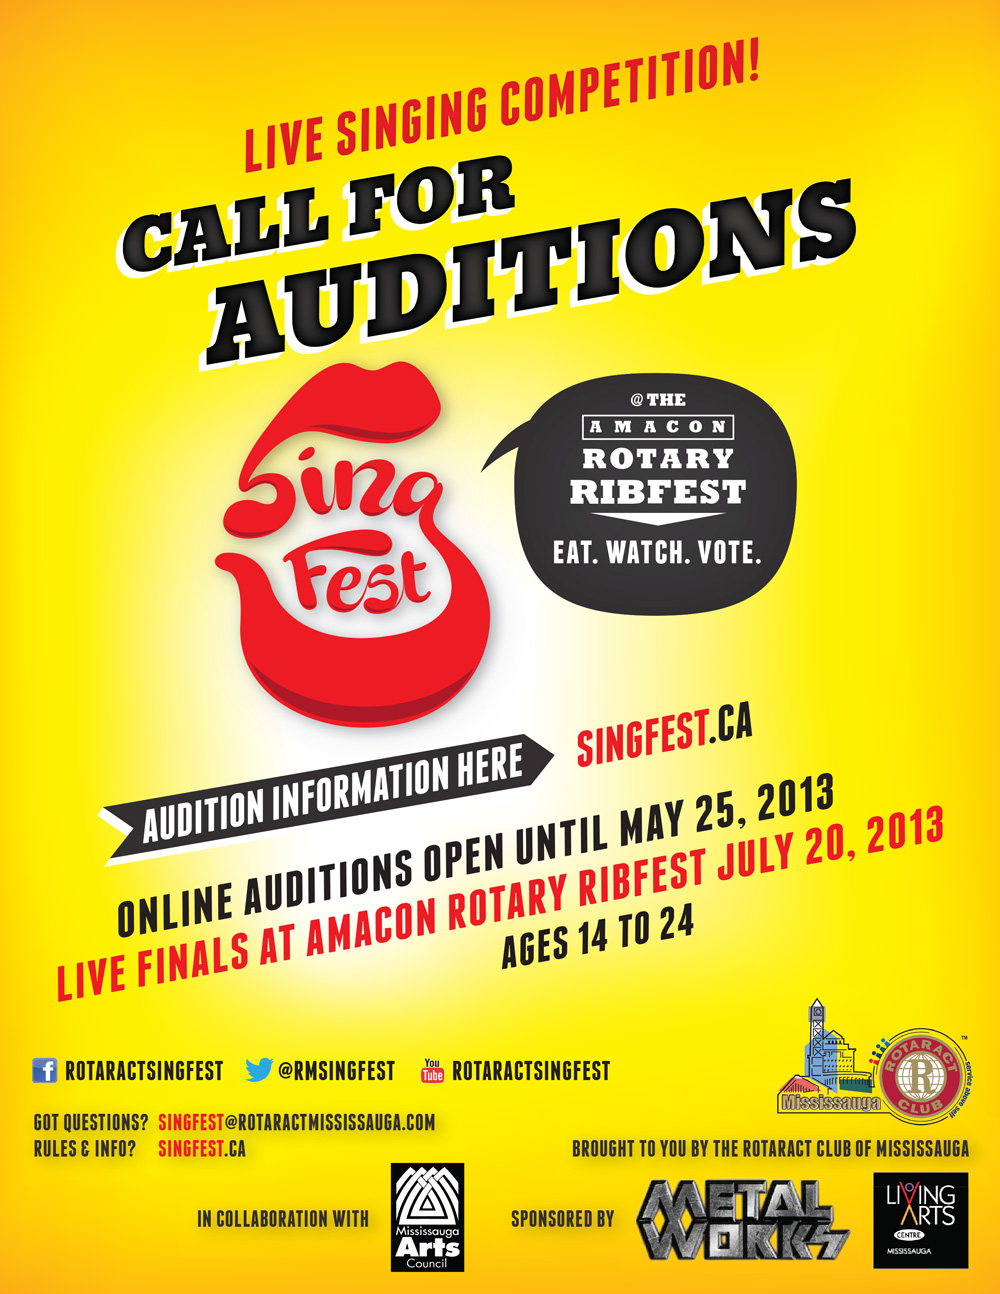 Audition online to sing